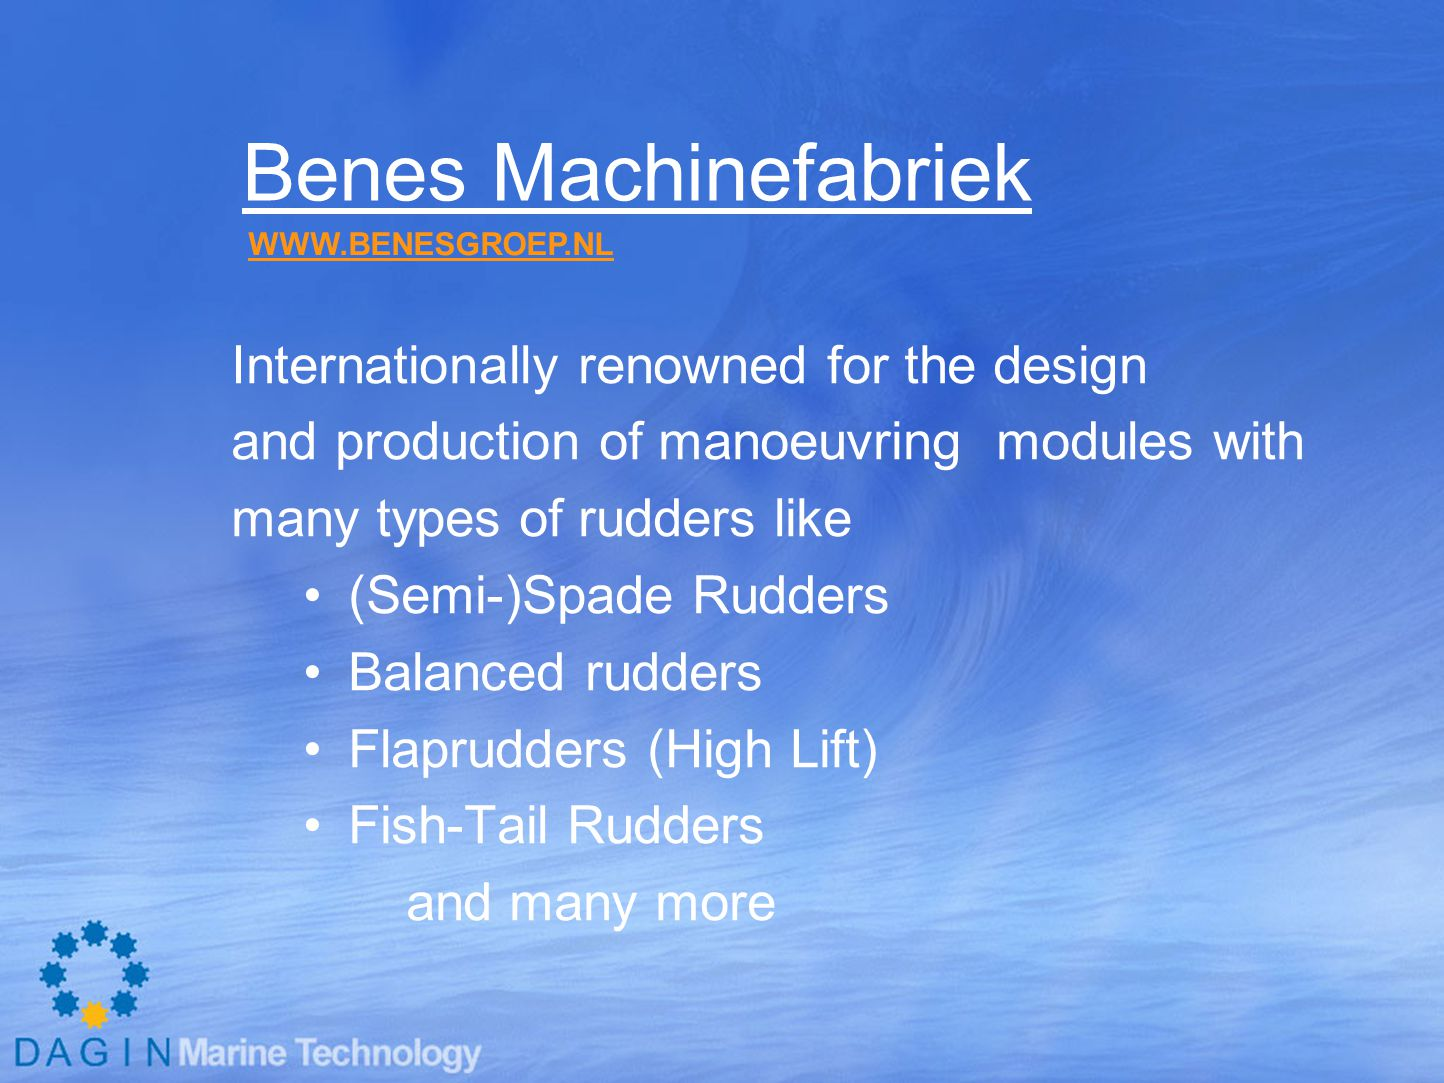 Benes Machinefabriek Internationally renowned for the design and production of manoeuvring modules with many types of rudders like (Semi-)Spade Rudders Balanced rudders Flaprudders (High Lift) Fish-Tail Rudders and many more WWW.BENESGROEP.NL